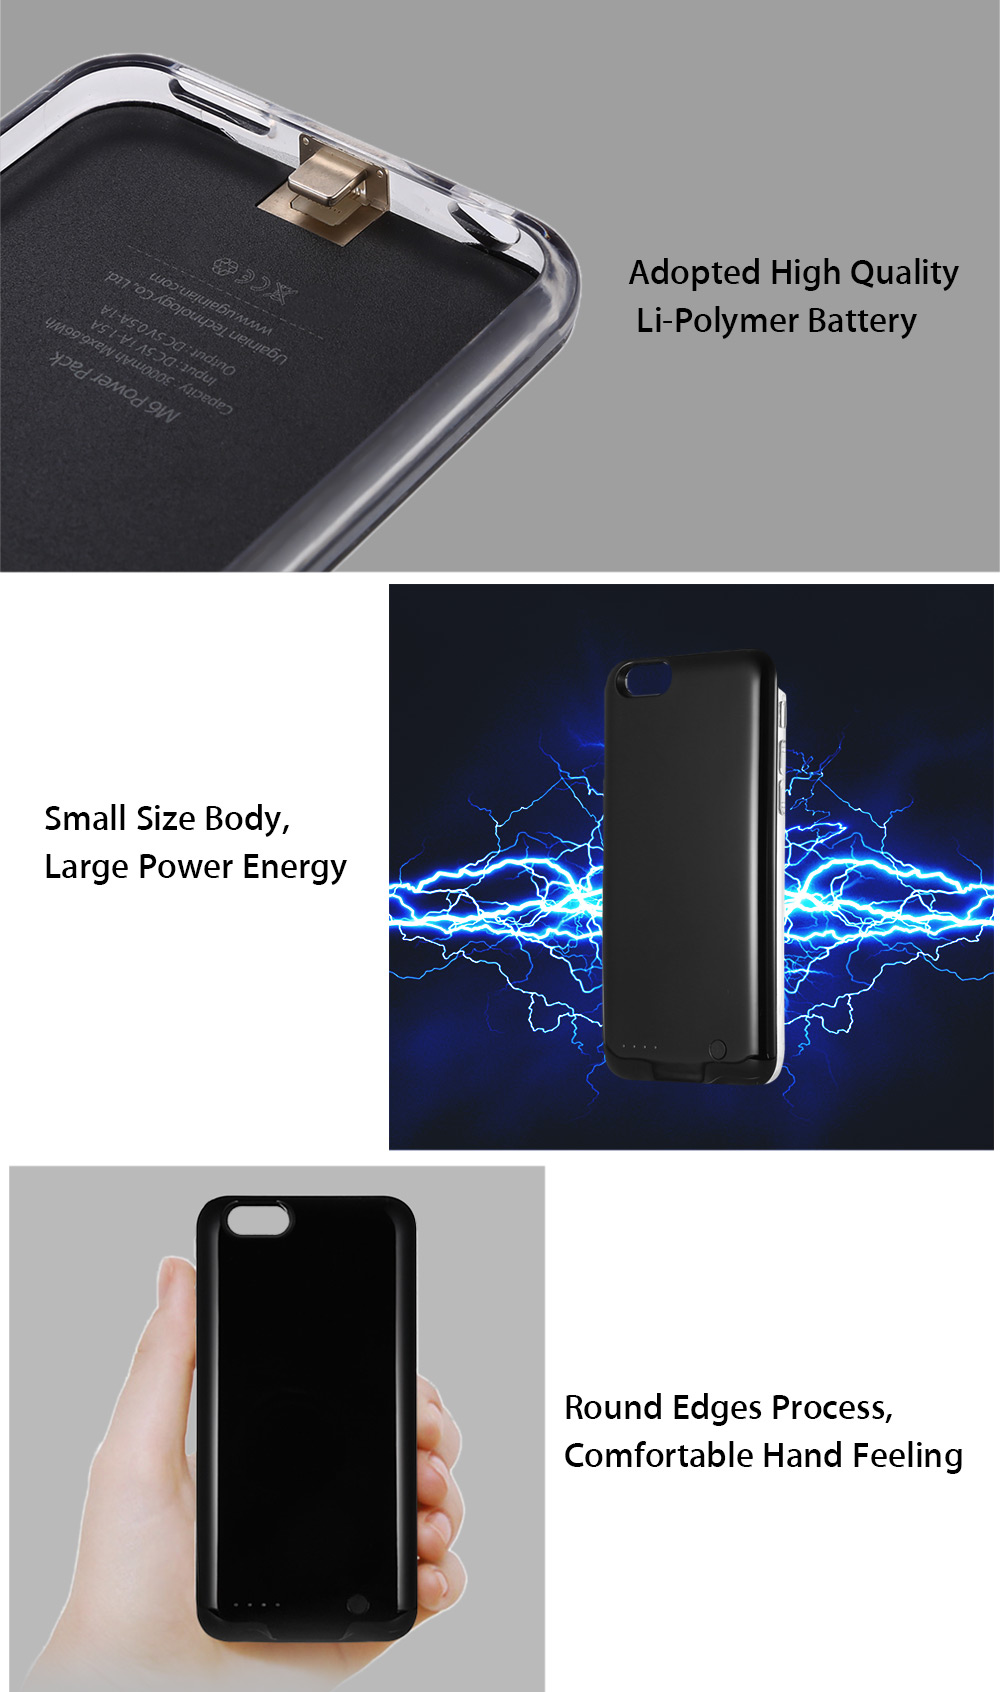 MEIPU M6 3000mAh Backup Power Bank Case Protective Cover for iPhone 6 / 6S